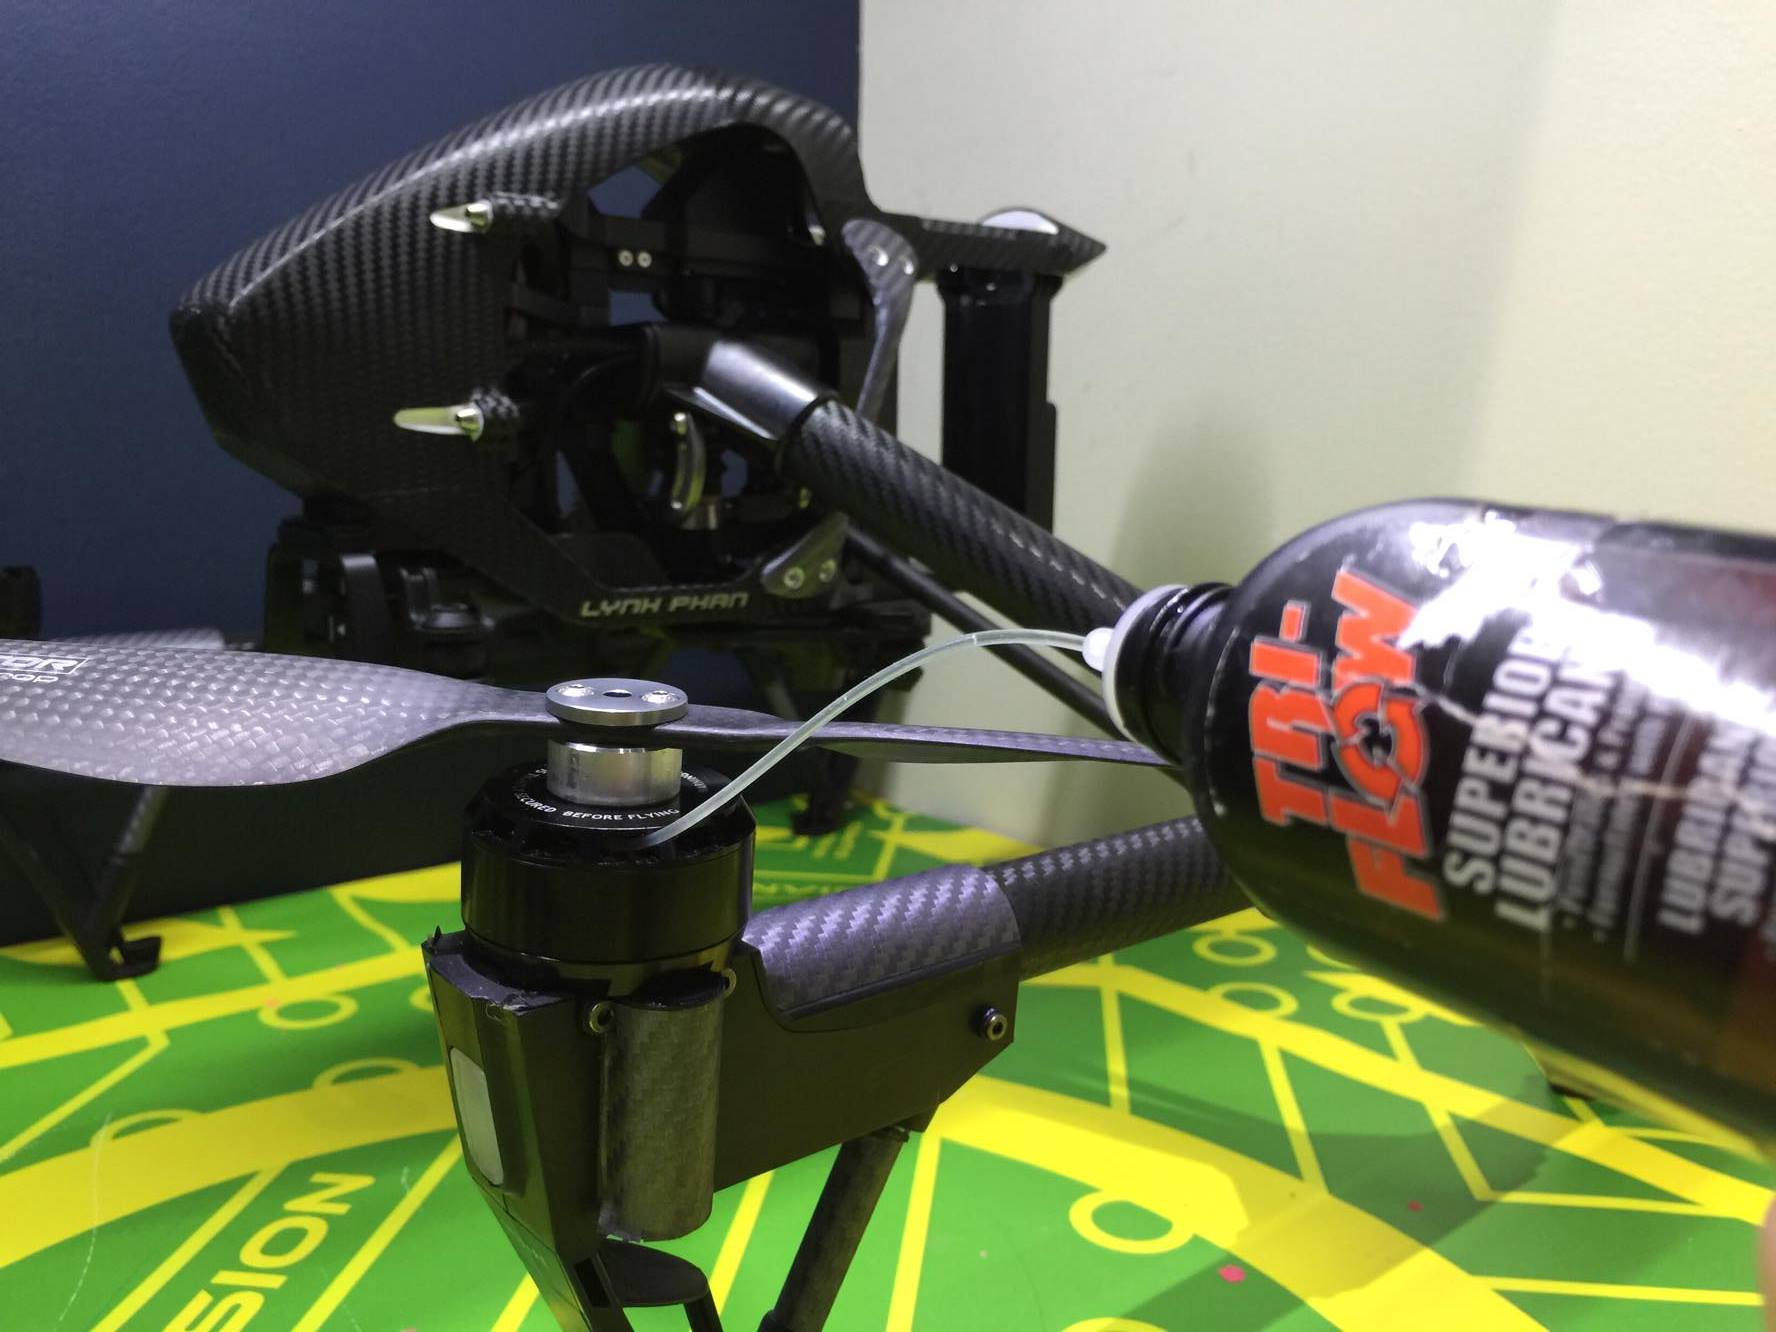 Lynh phan s tips drone motor lubricant to be or not to be for How to lubricate an electric motor